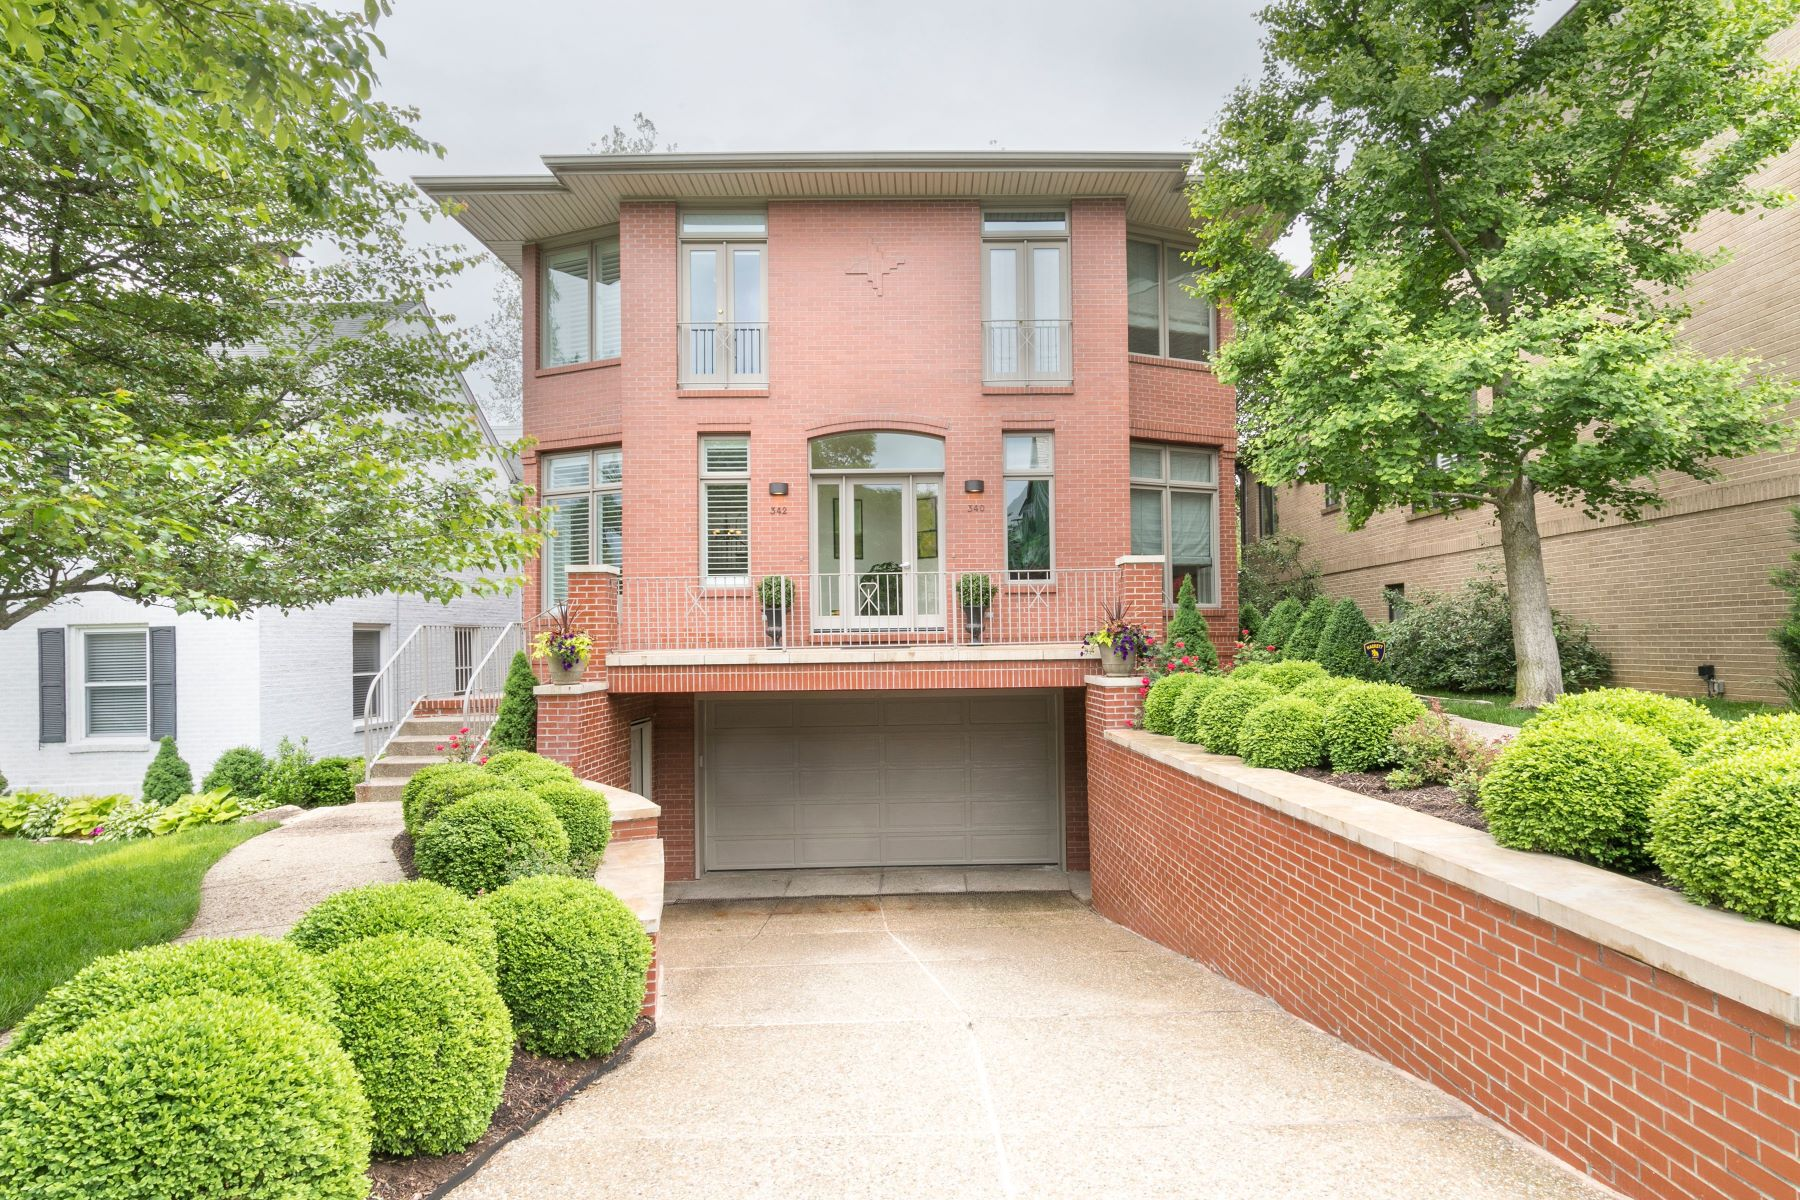 Condominiums for Sale at Attractive Townhome in Old Town Clayton 342 North Central Avenue Clayton, Missouri 63105 United States